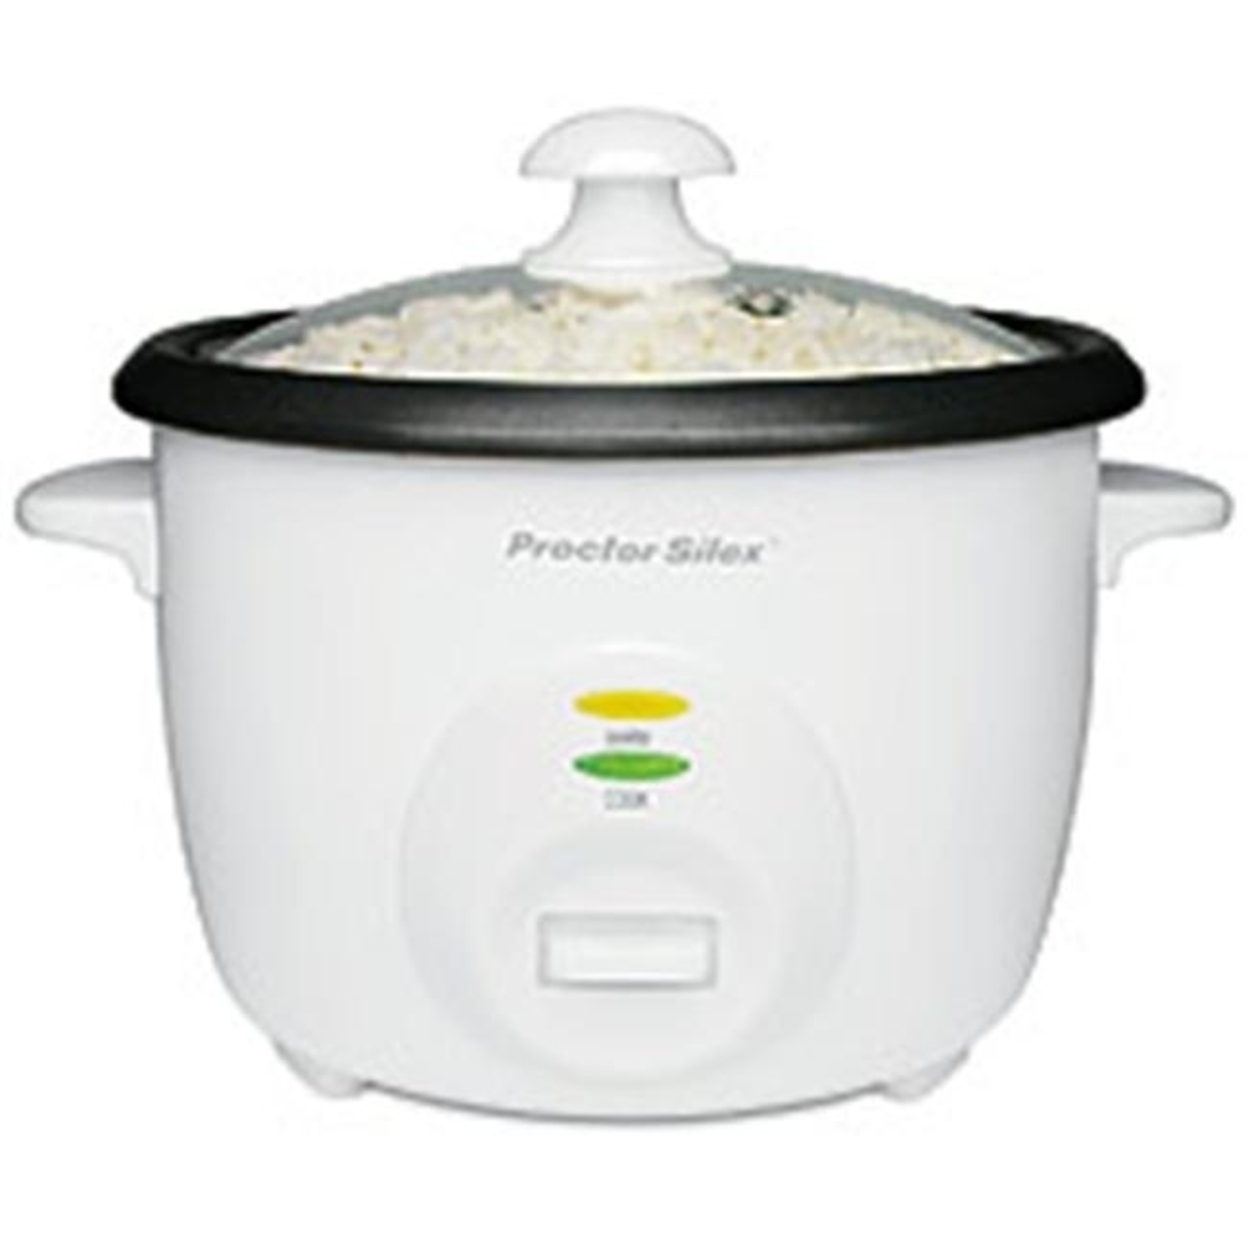 Proctor-Silex 37533 10 Cup Rice Cooker 59f1052ee2246179f27f6b0e